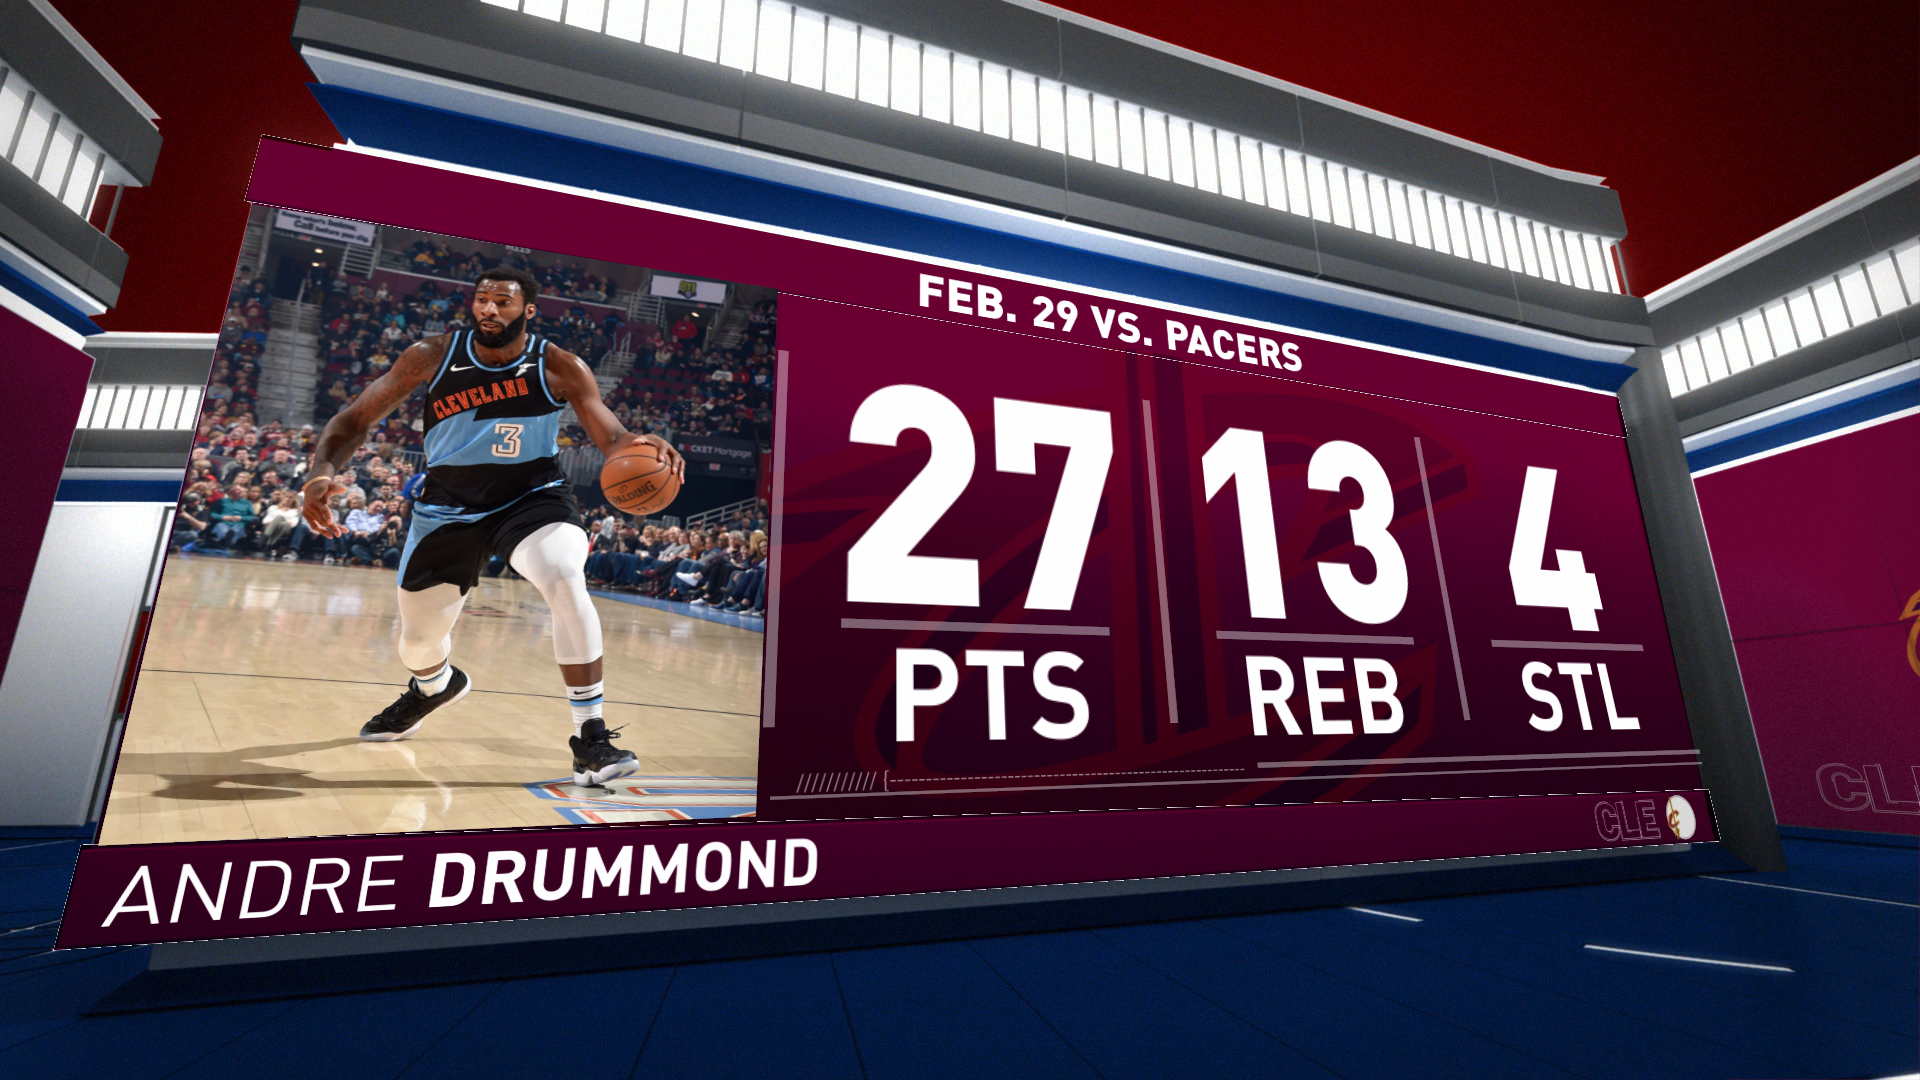 Highlights: Andre Drummond | Cavaliers vs. Pacers